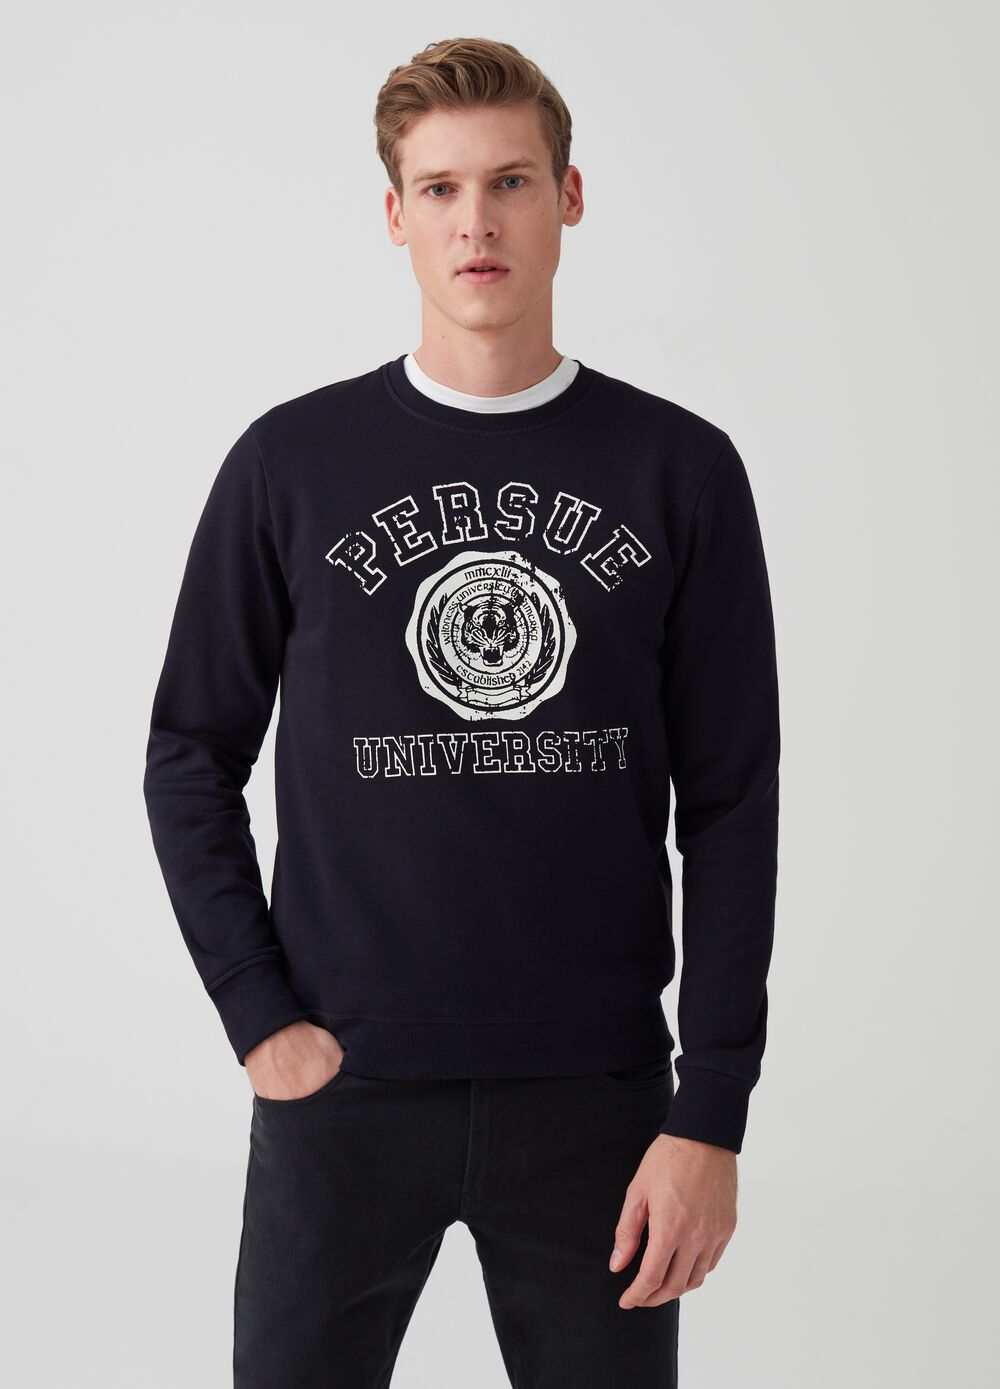 Letter print sweatshirt with crew neck